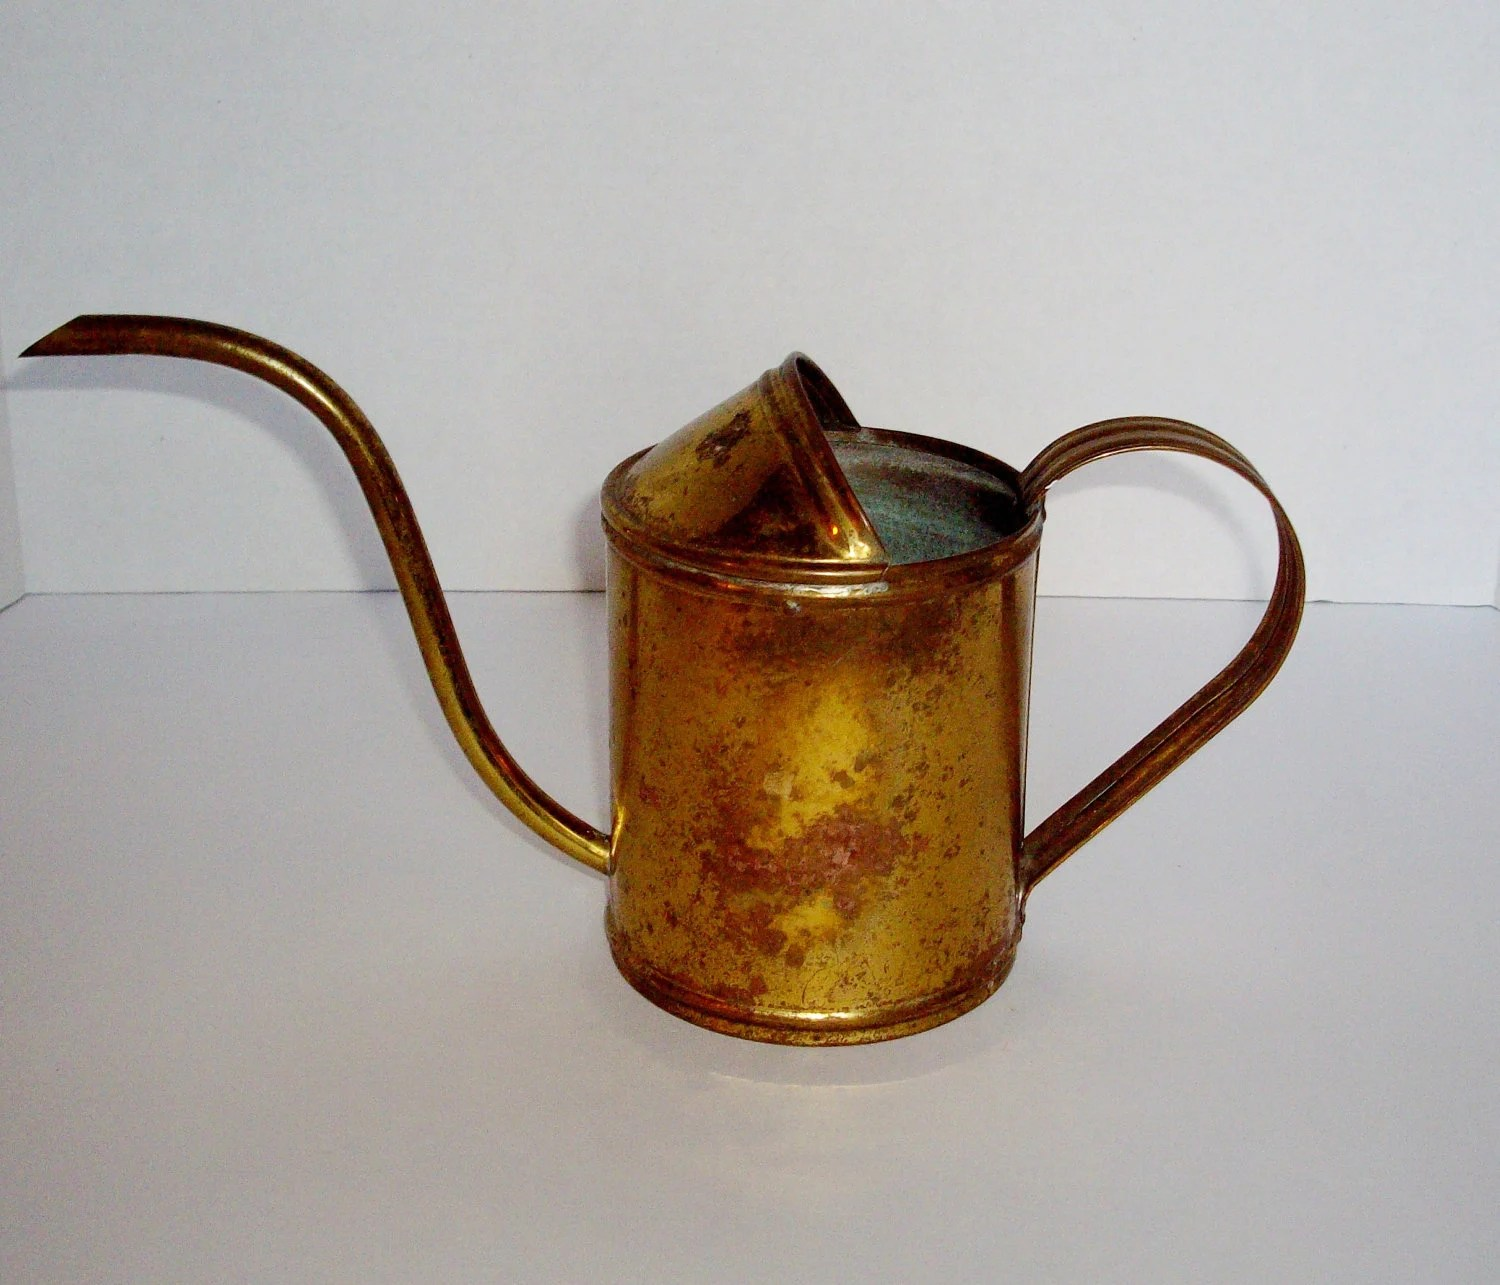 Watering Cans With Long Spouts Vintage Brass Watering Can Small Long Pour Spout By